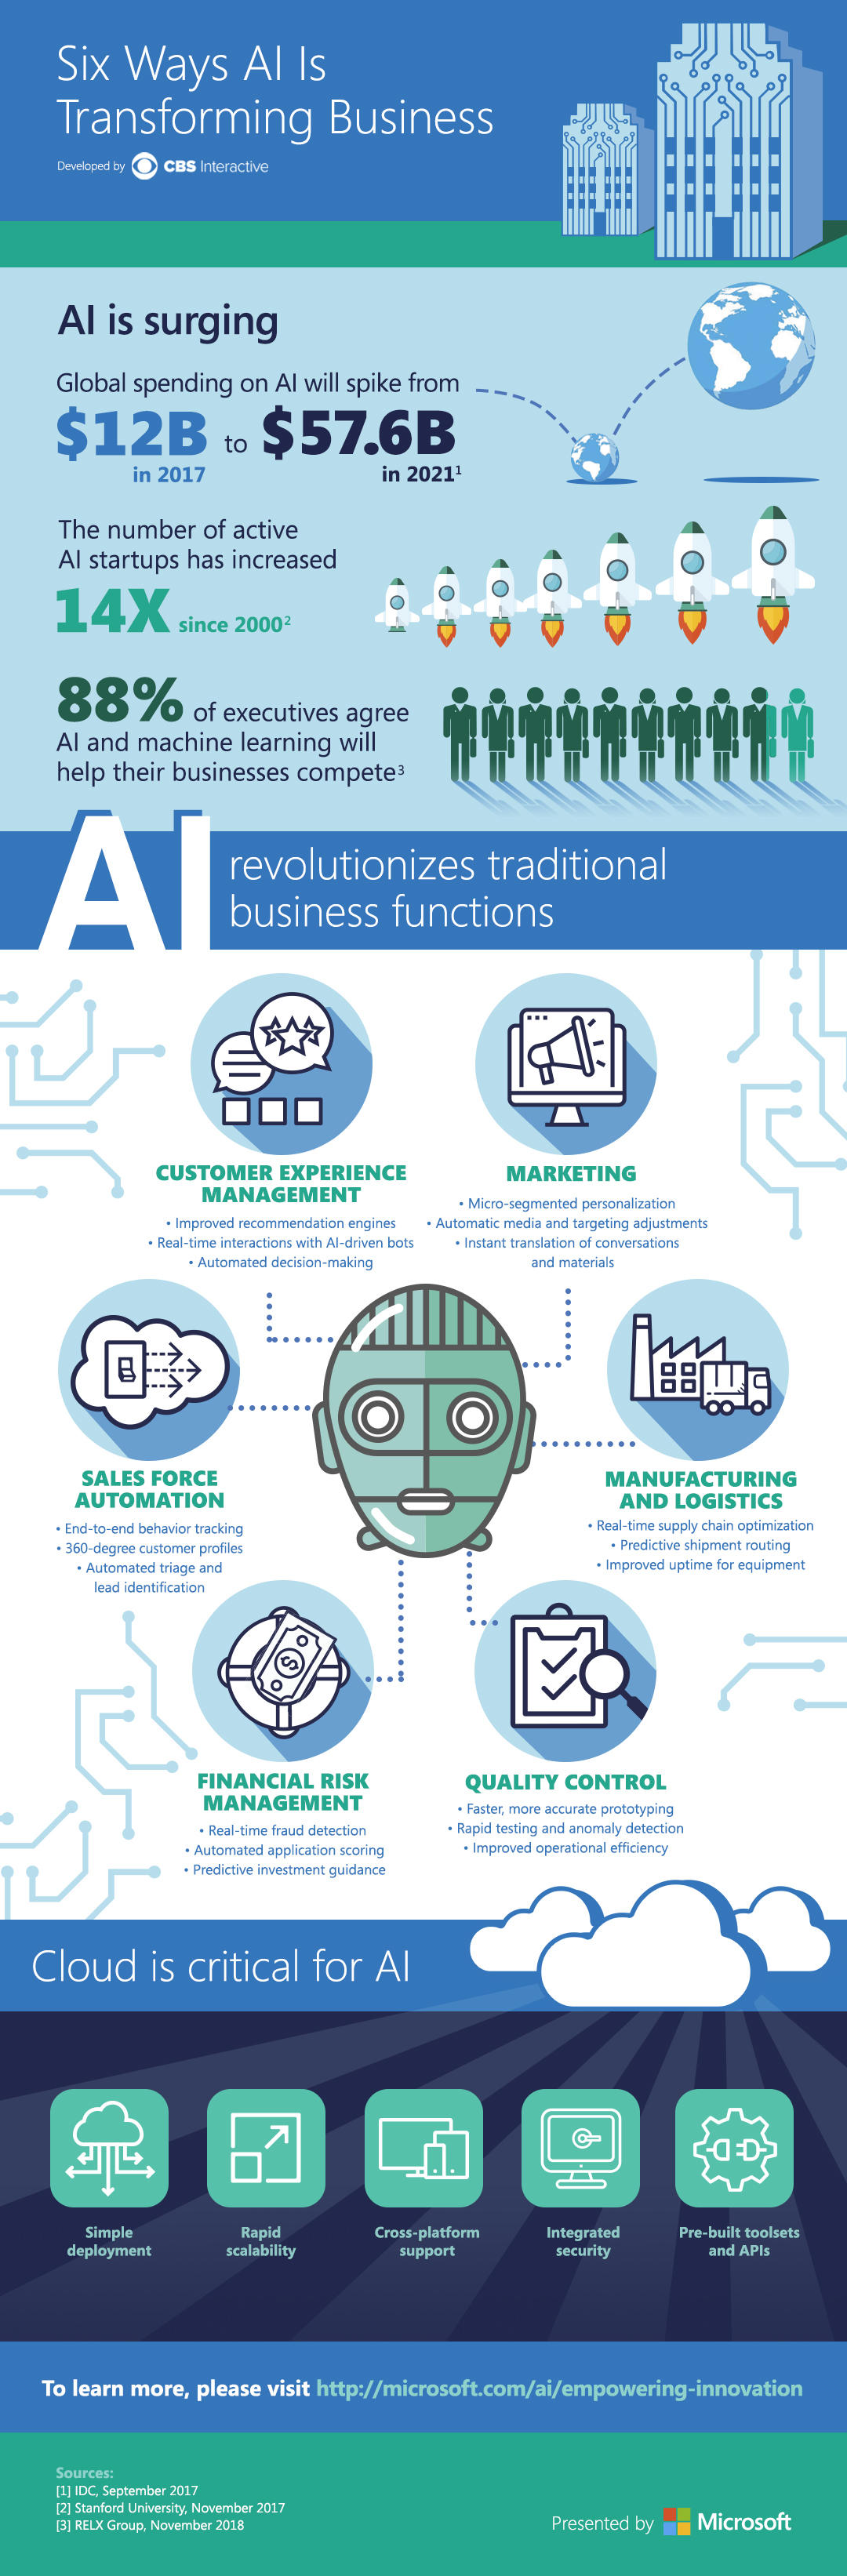 Microsoft ai for business infographic